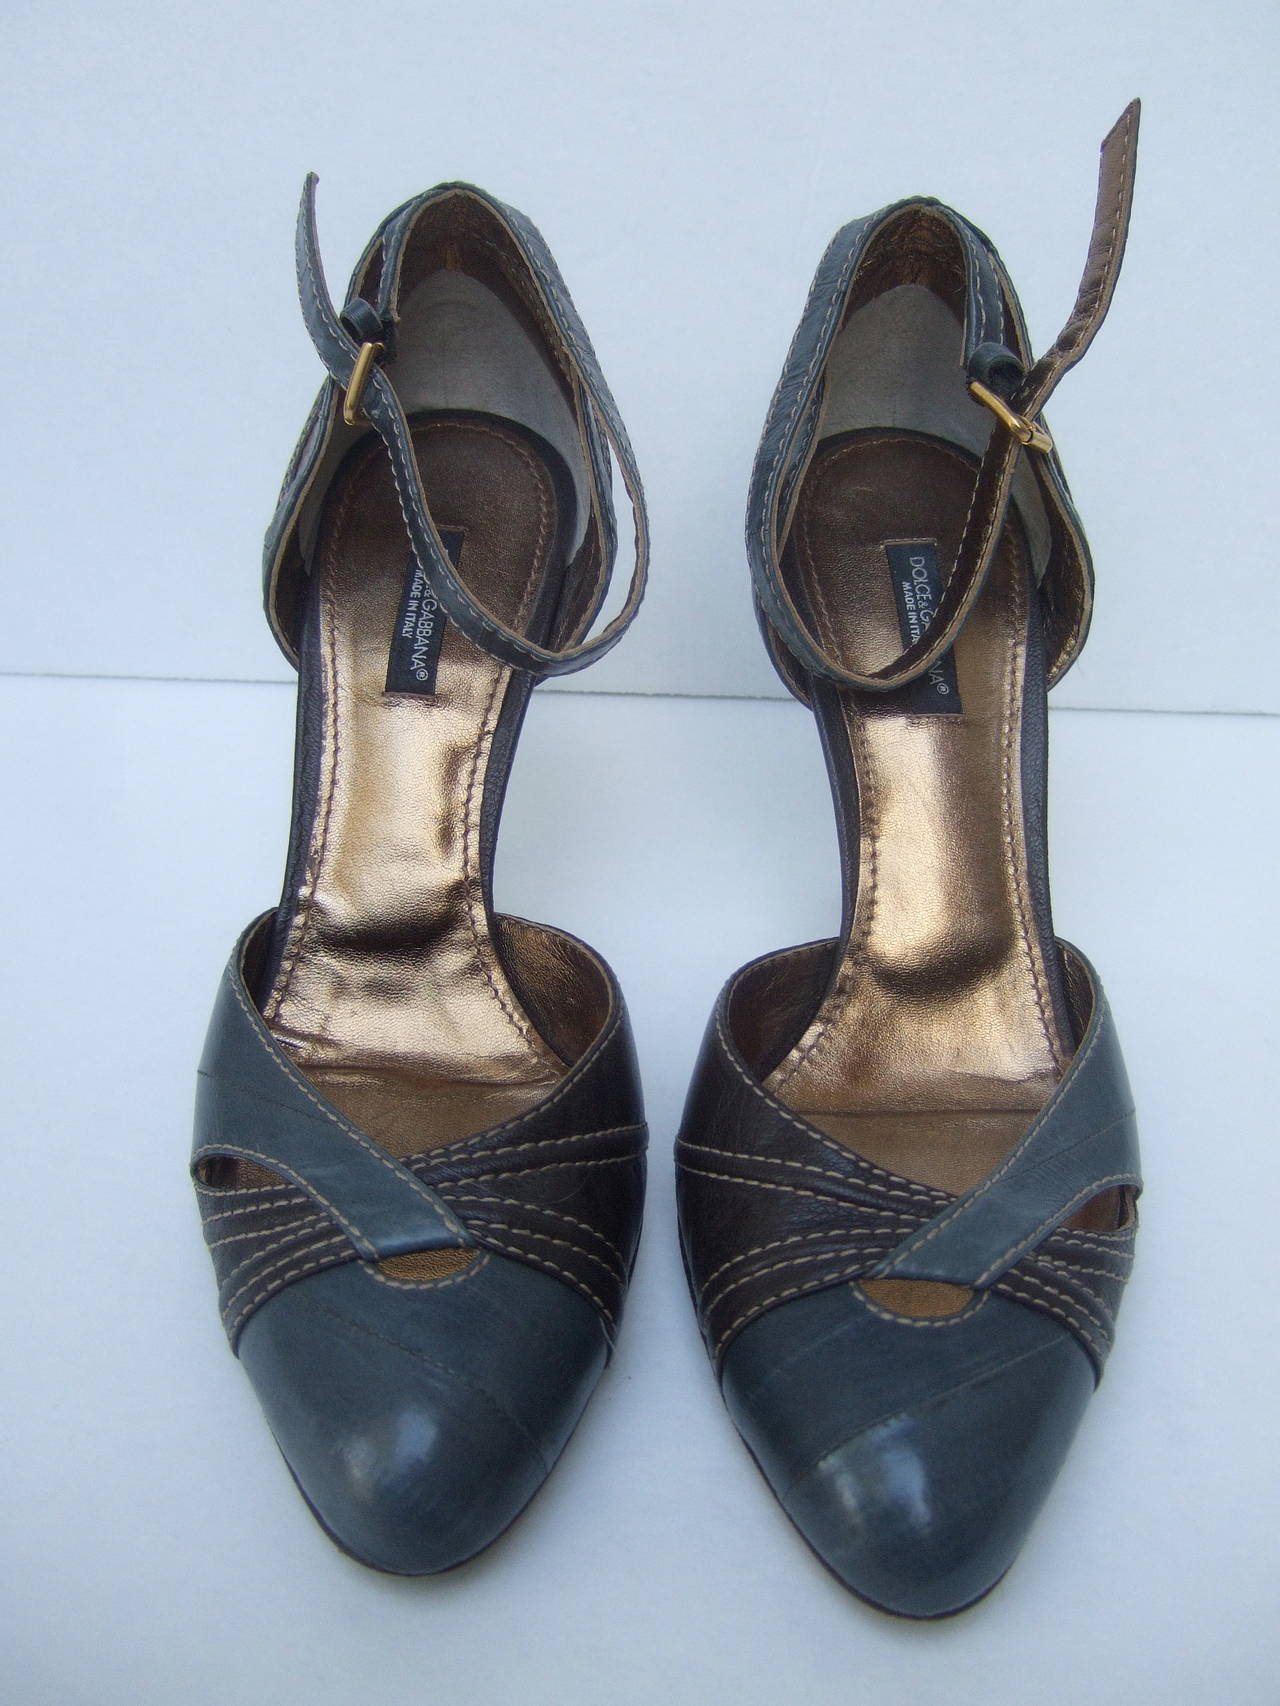 Black Dolce & Gabbana Gray & Brown Ankle Strap Shoes Size 39.5 Made in Italy For Sale